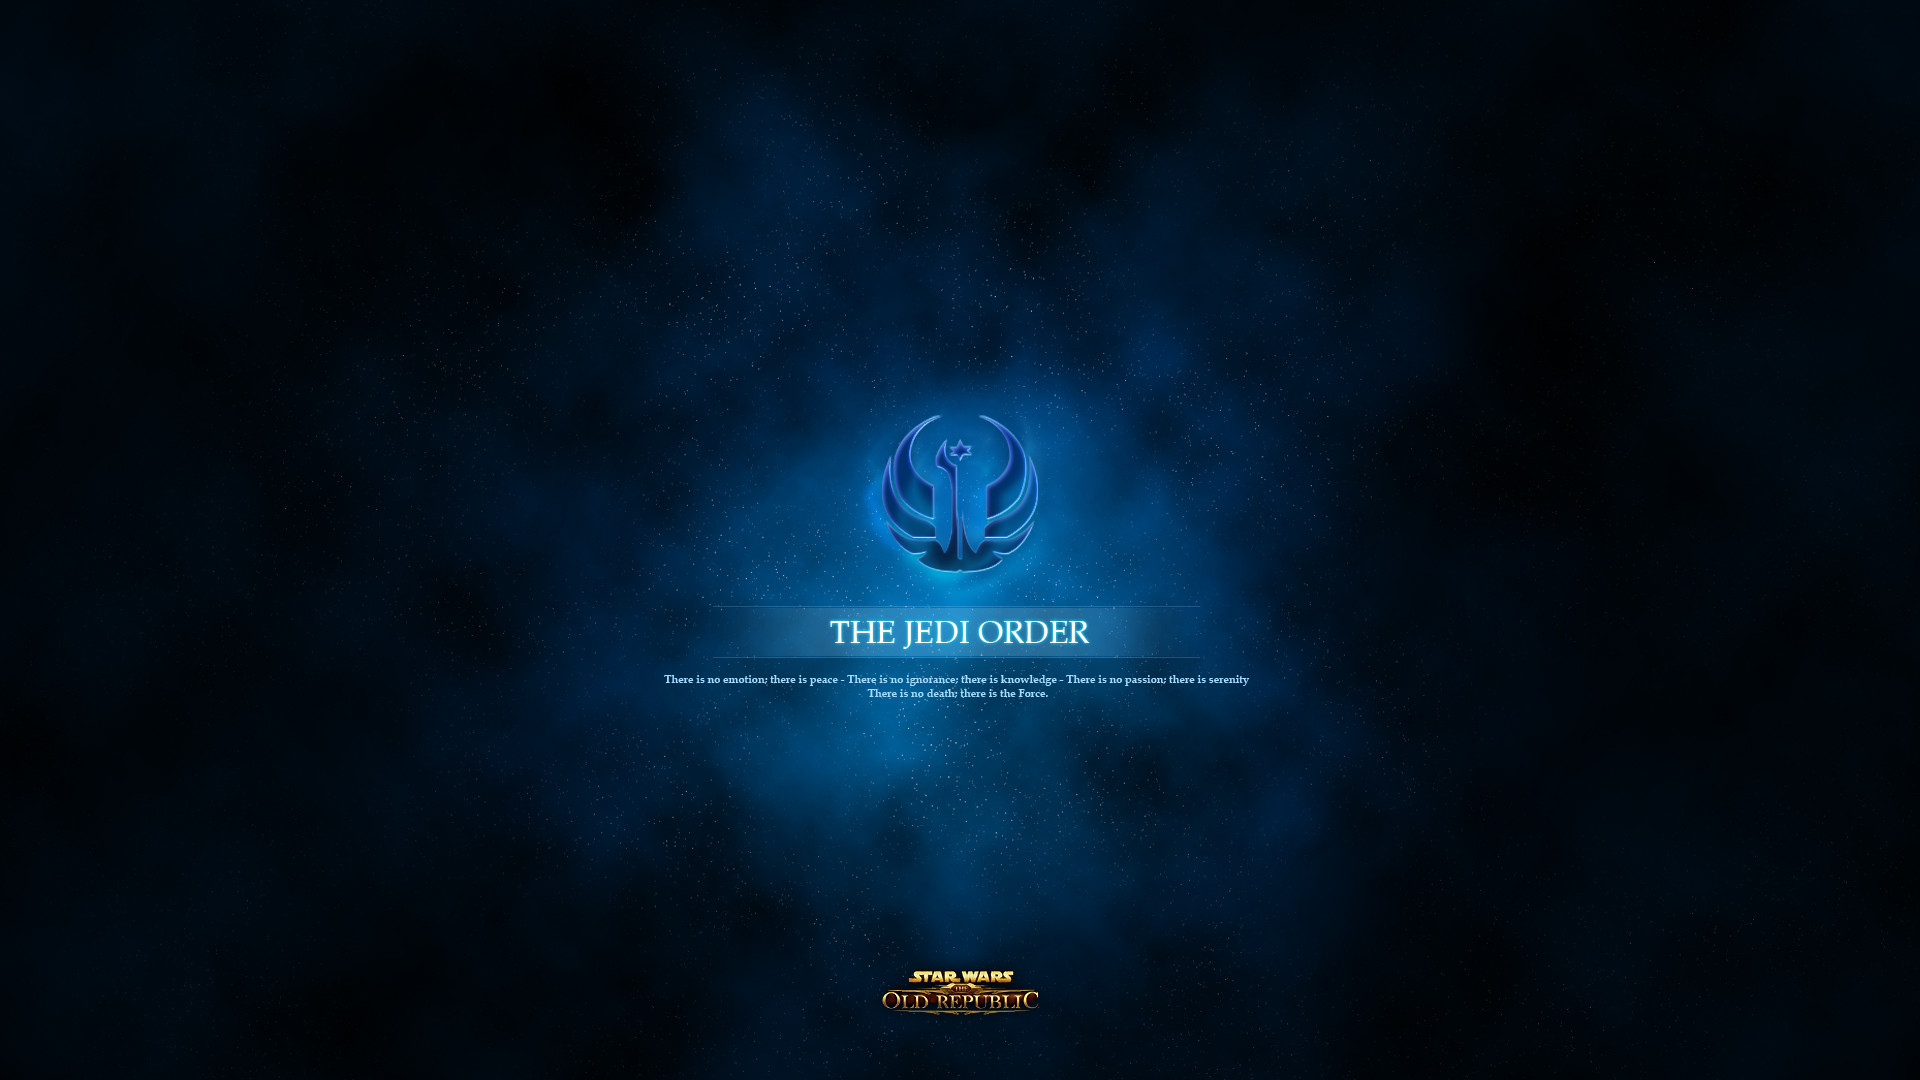 Jedi Knight Wallpaper Posted By Ethan Thompson